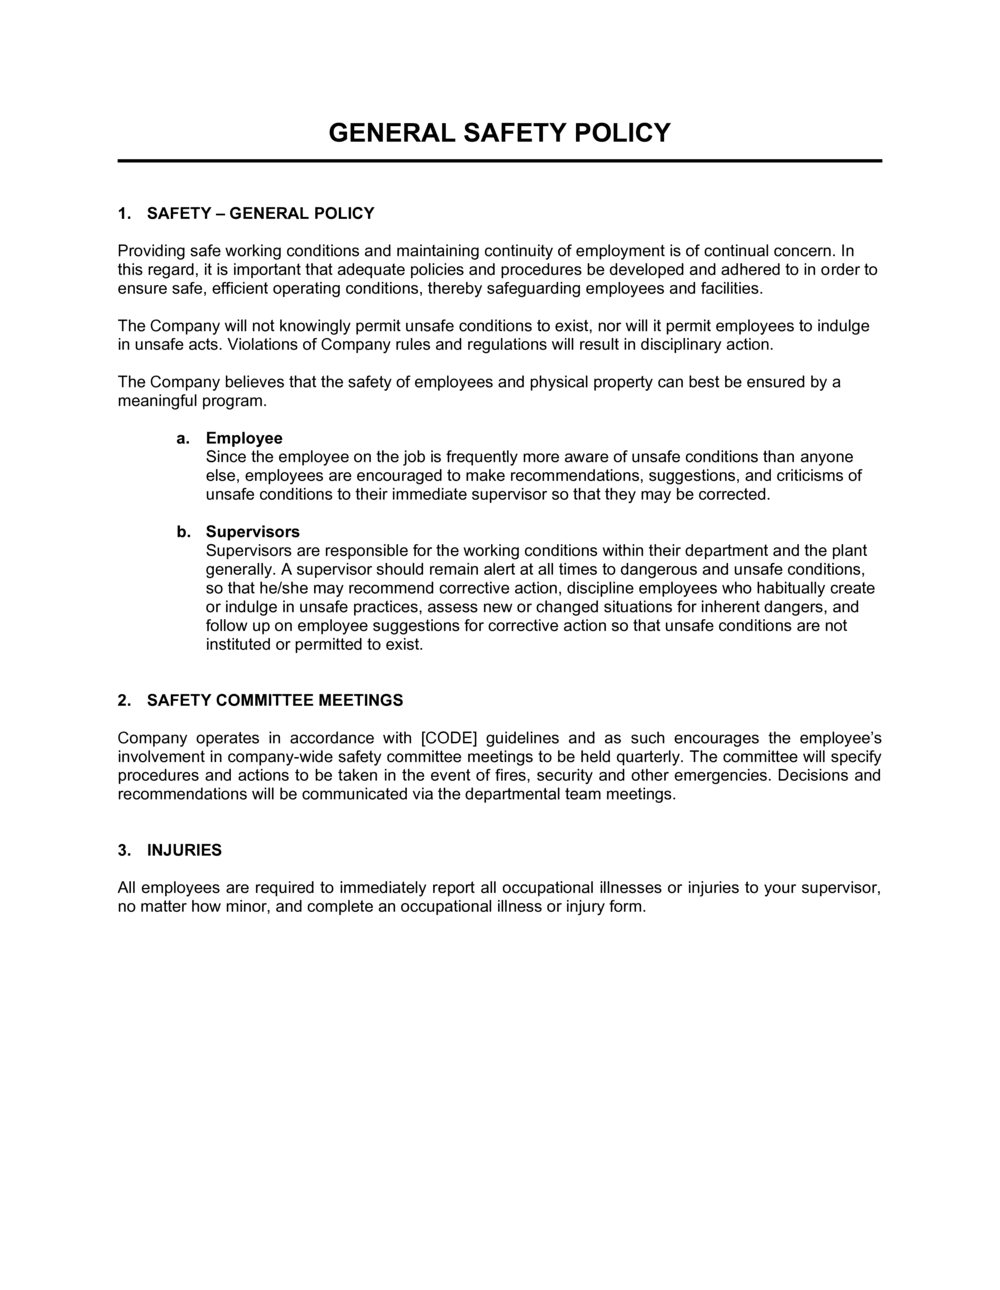 Business-in-a-Box's General Safety Policy Template